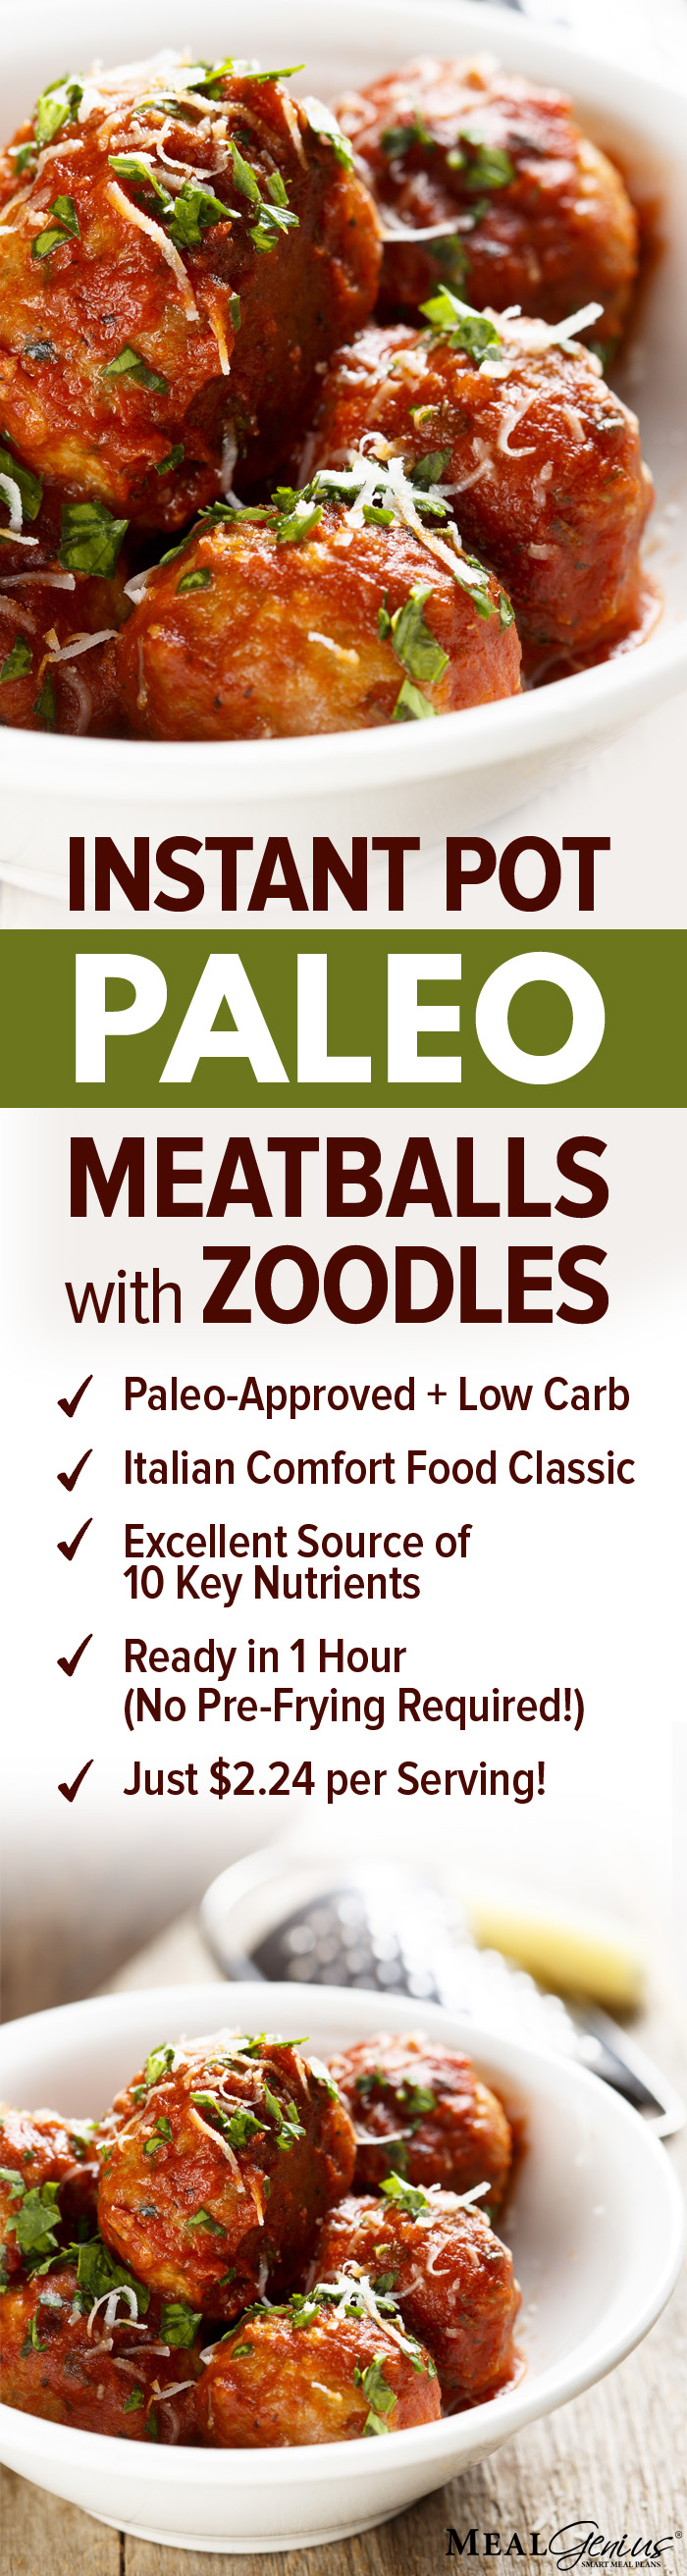 Instant Pot Paleo Meatballs with Zoodles - Meal Genius